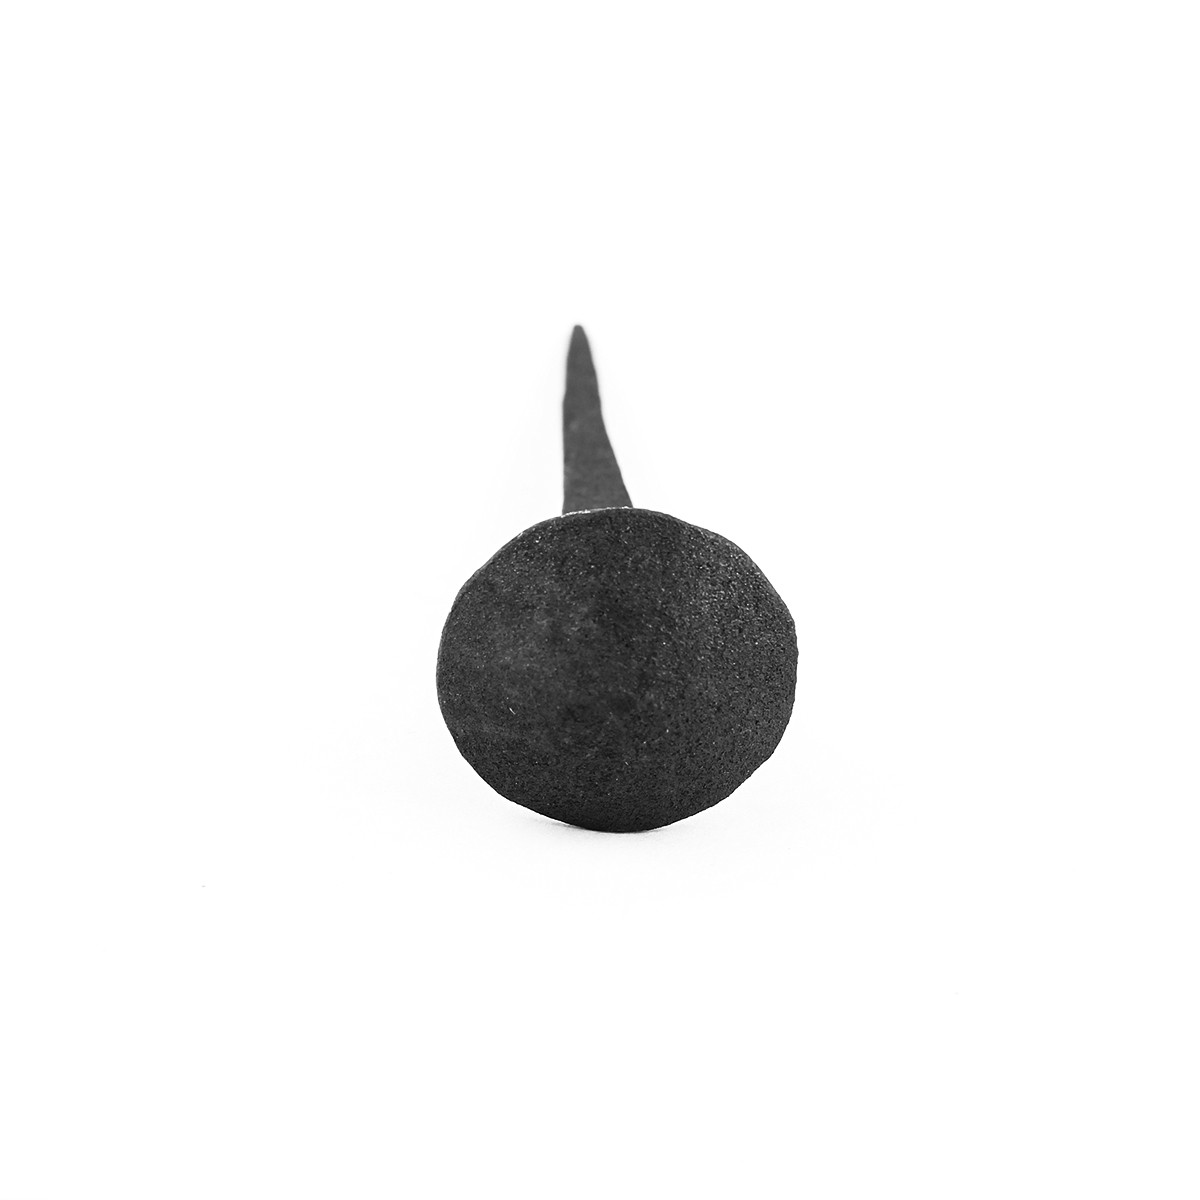 Clavos Black Wrought Iron Nails Square Iron Nails Black 4 14 X 1 1 Iron Nails wrought iron nails Decorative Nail Heads